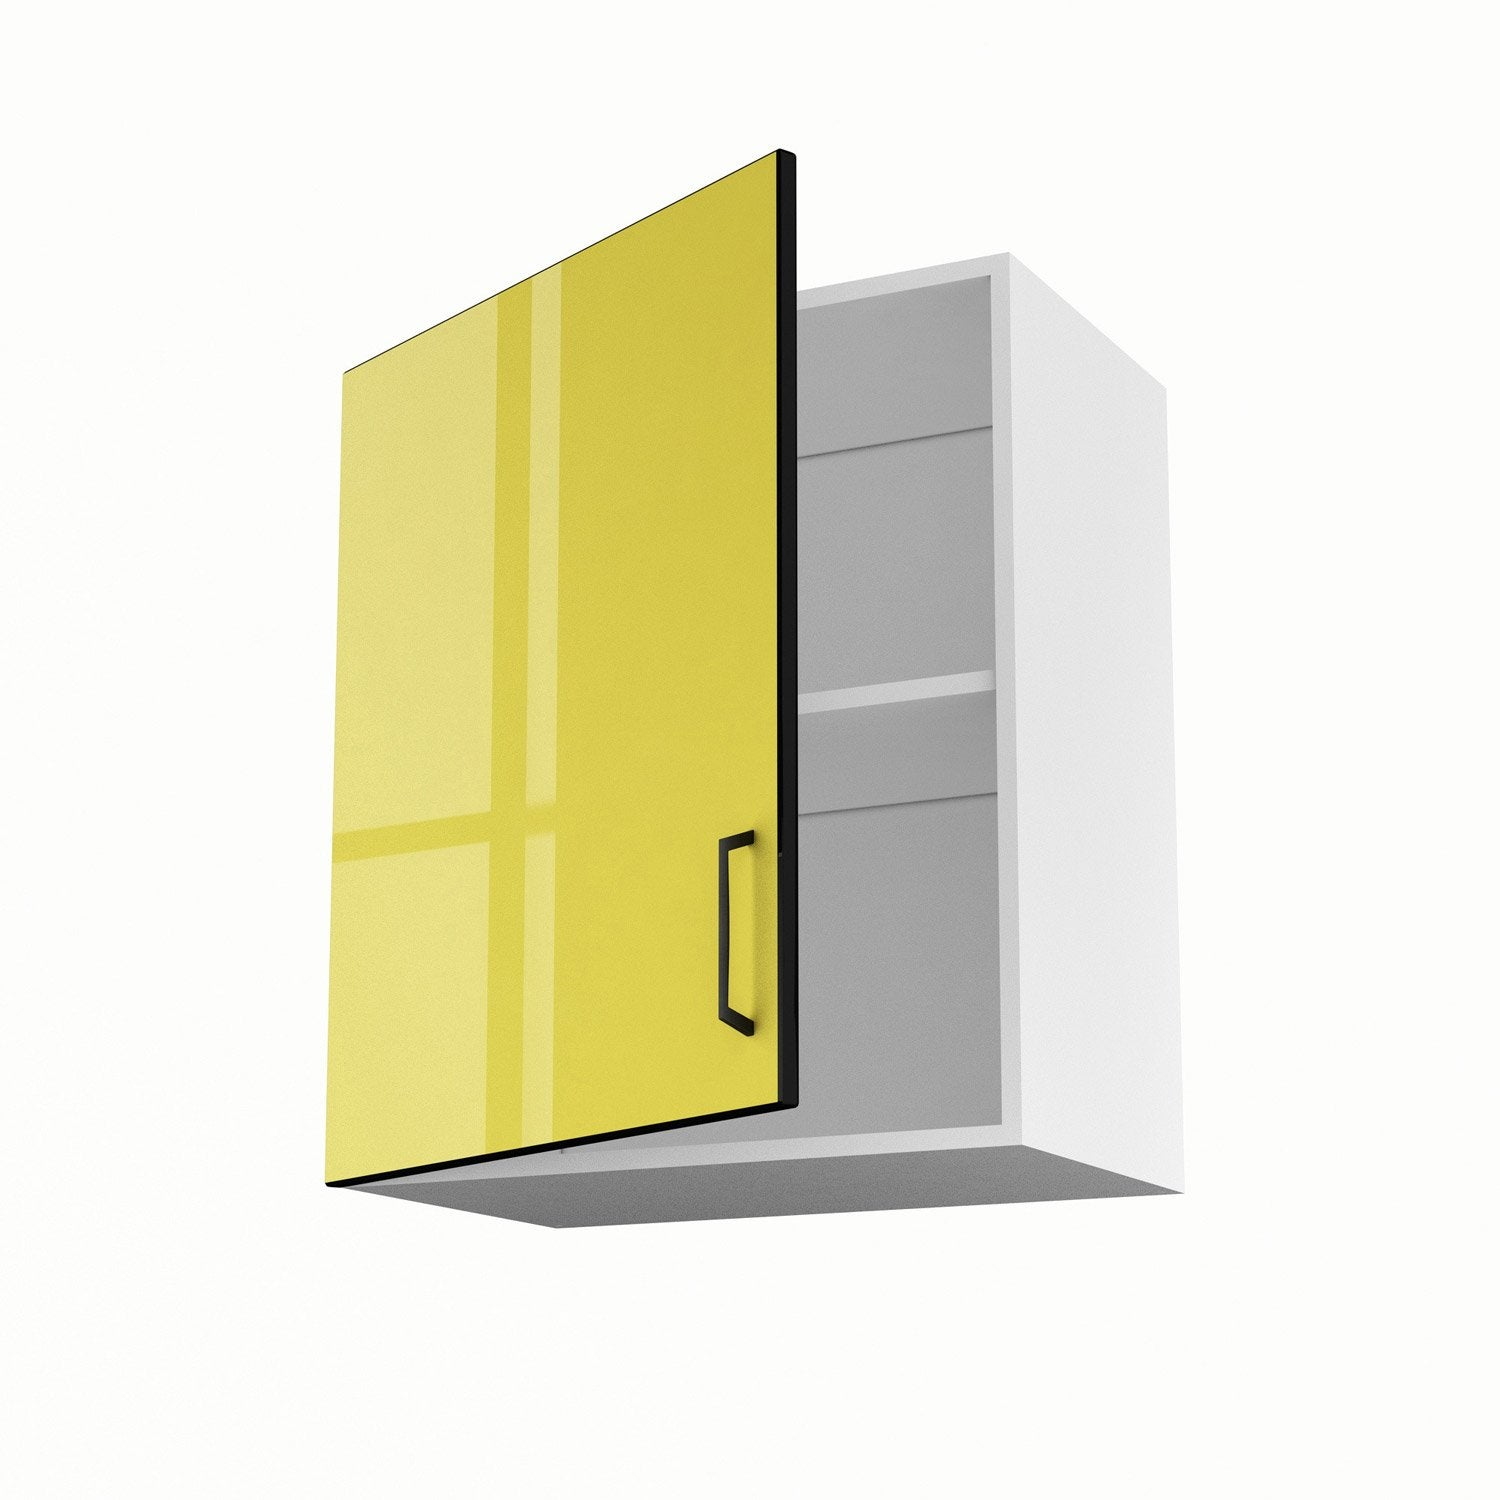 Meuble de cuisine haut jaune 1 porte pop h70xl60xp35 cm for Porte 60 x 70